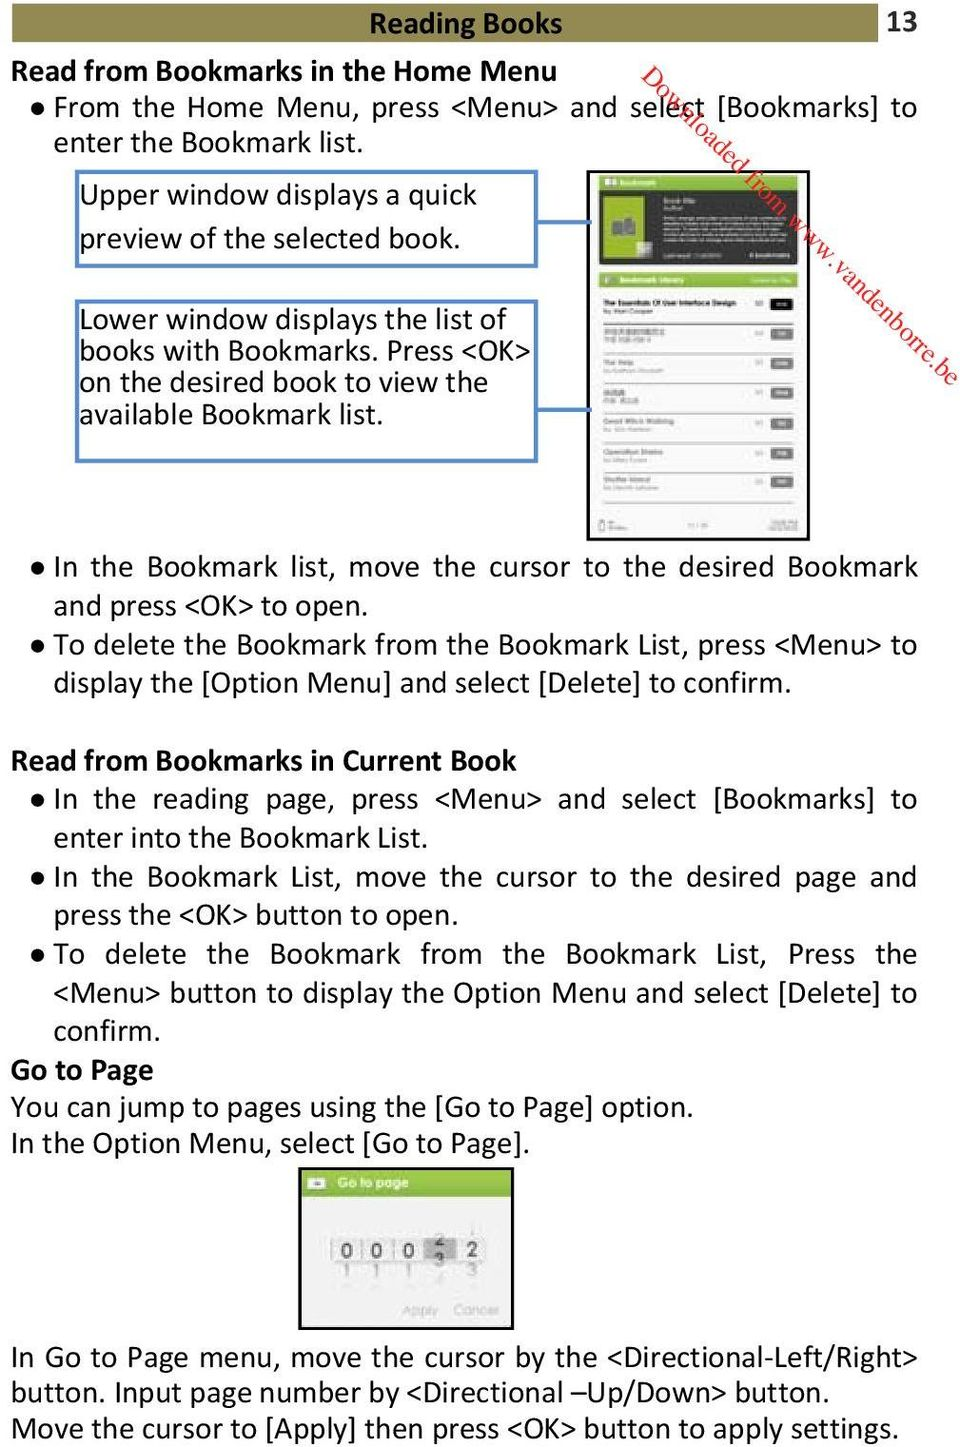 In the Bookmark list, move the cursor to the desired Bookmark and press <OK> to open.